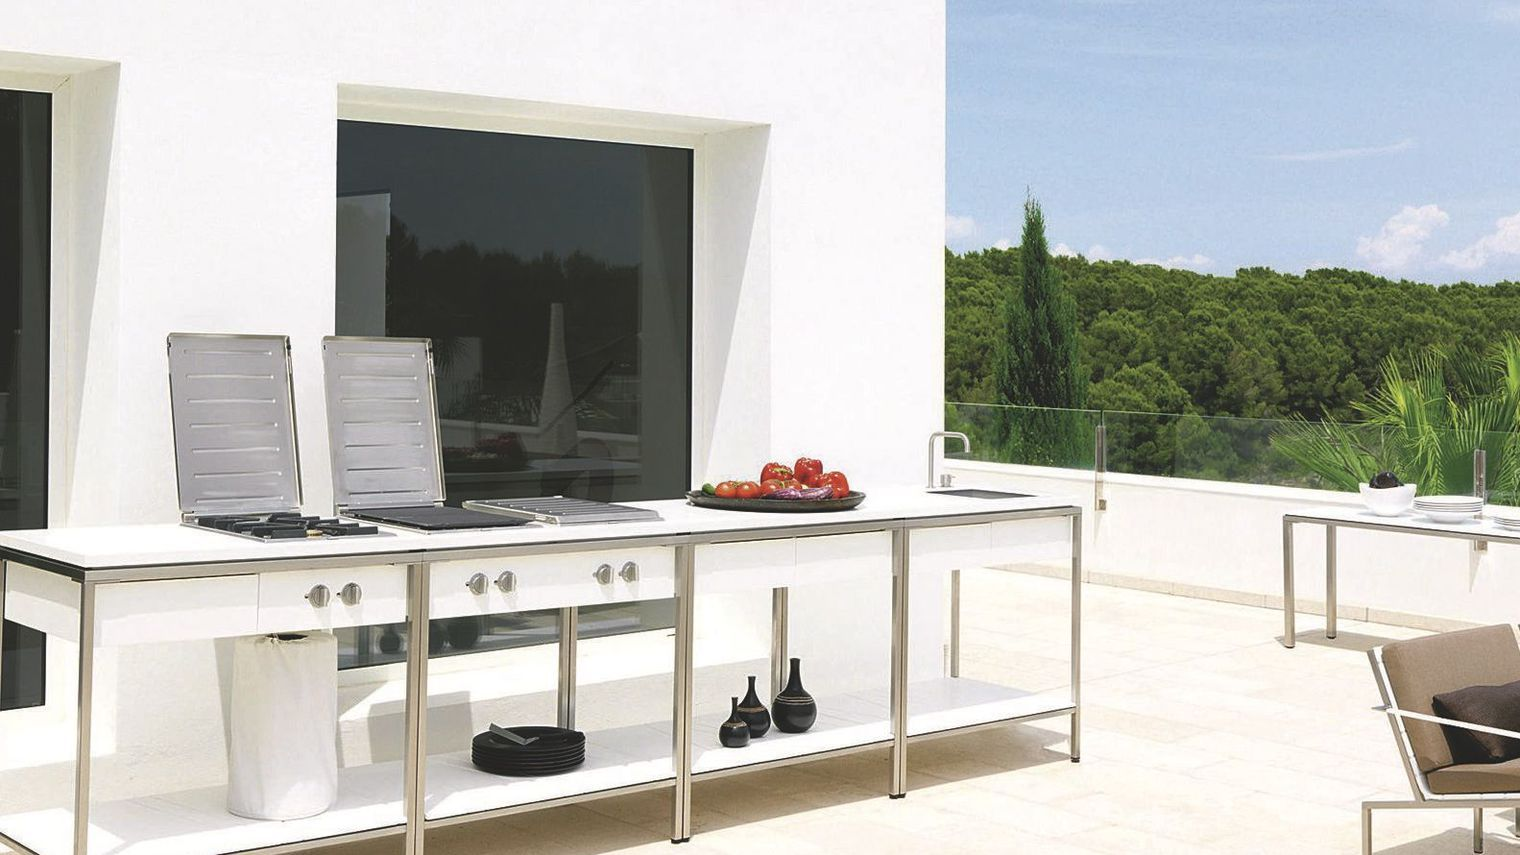 cuisine d 39 ext rieur inox mobile design barbecue plancha c t maison bricolage. Black Bedroom Furniture Sets. Home Design Ideas